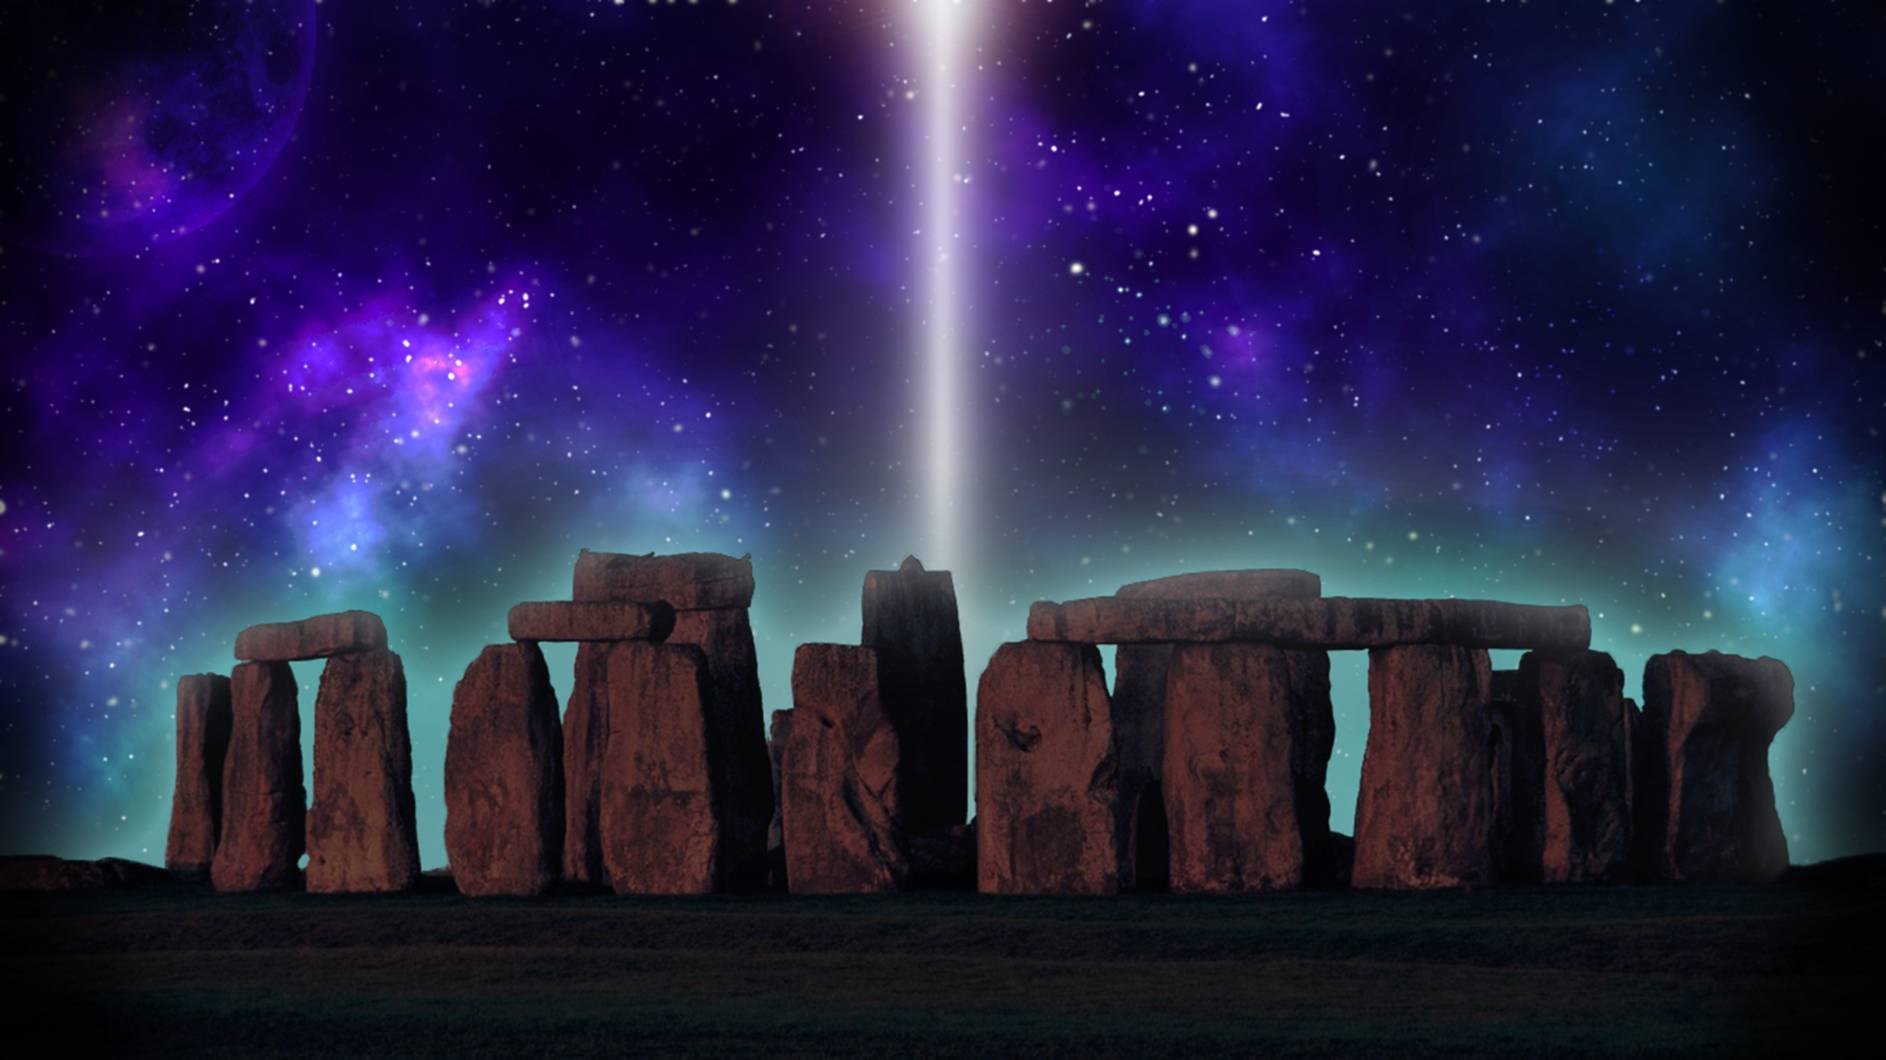 Stonehenge's strange connection. © Image Credit: Savatodorov   Licensed from DreamsTime.com (Editorial/Commercial Use Stock Photo, ID:106269633)